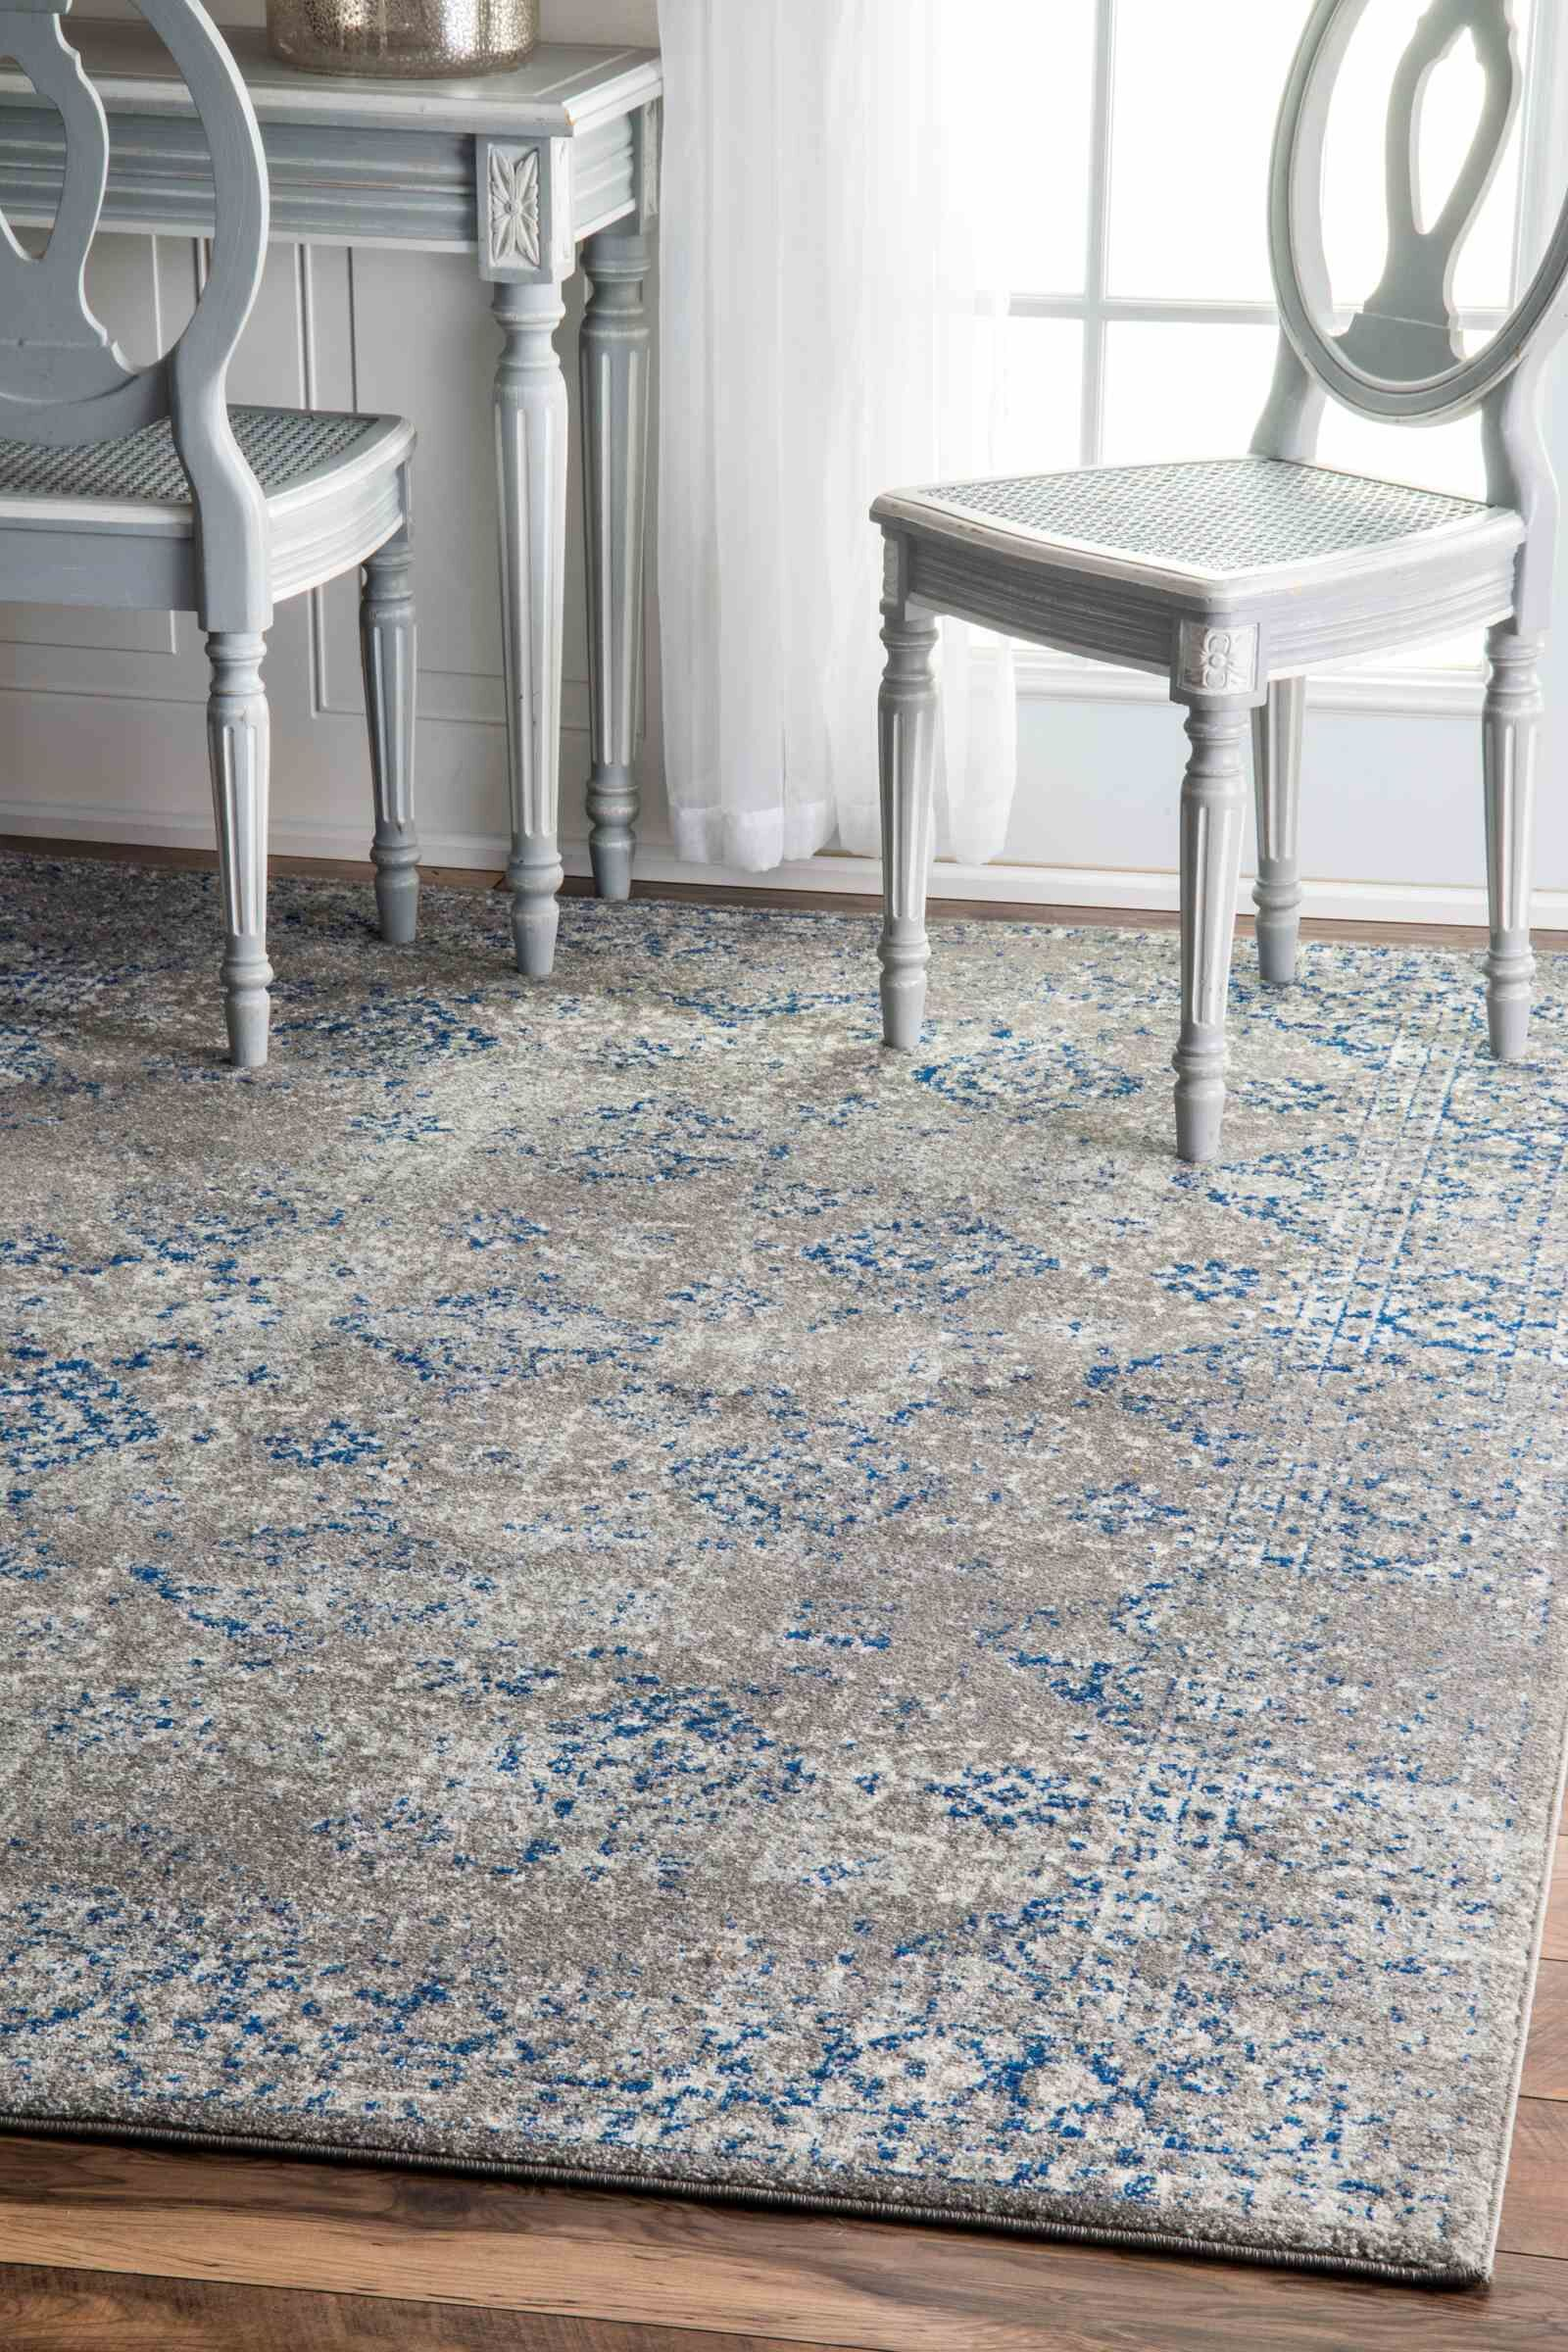 Avallon Faded Dark Blue Area Rug Rug Size: Rectangle 6' 7